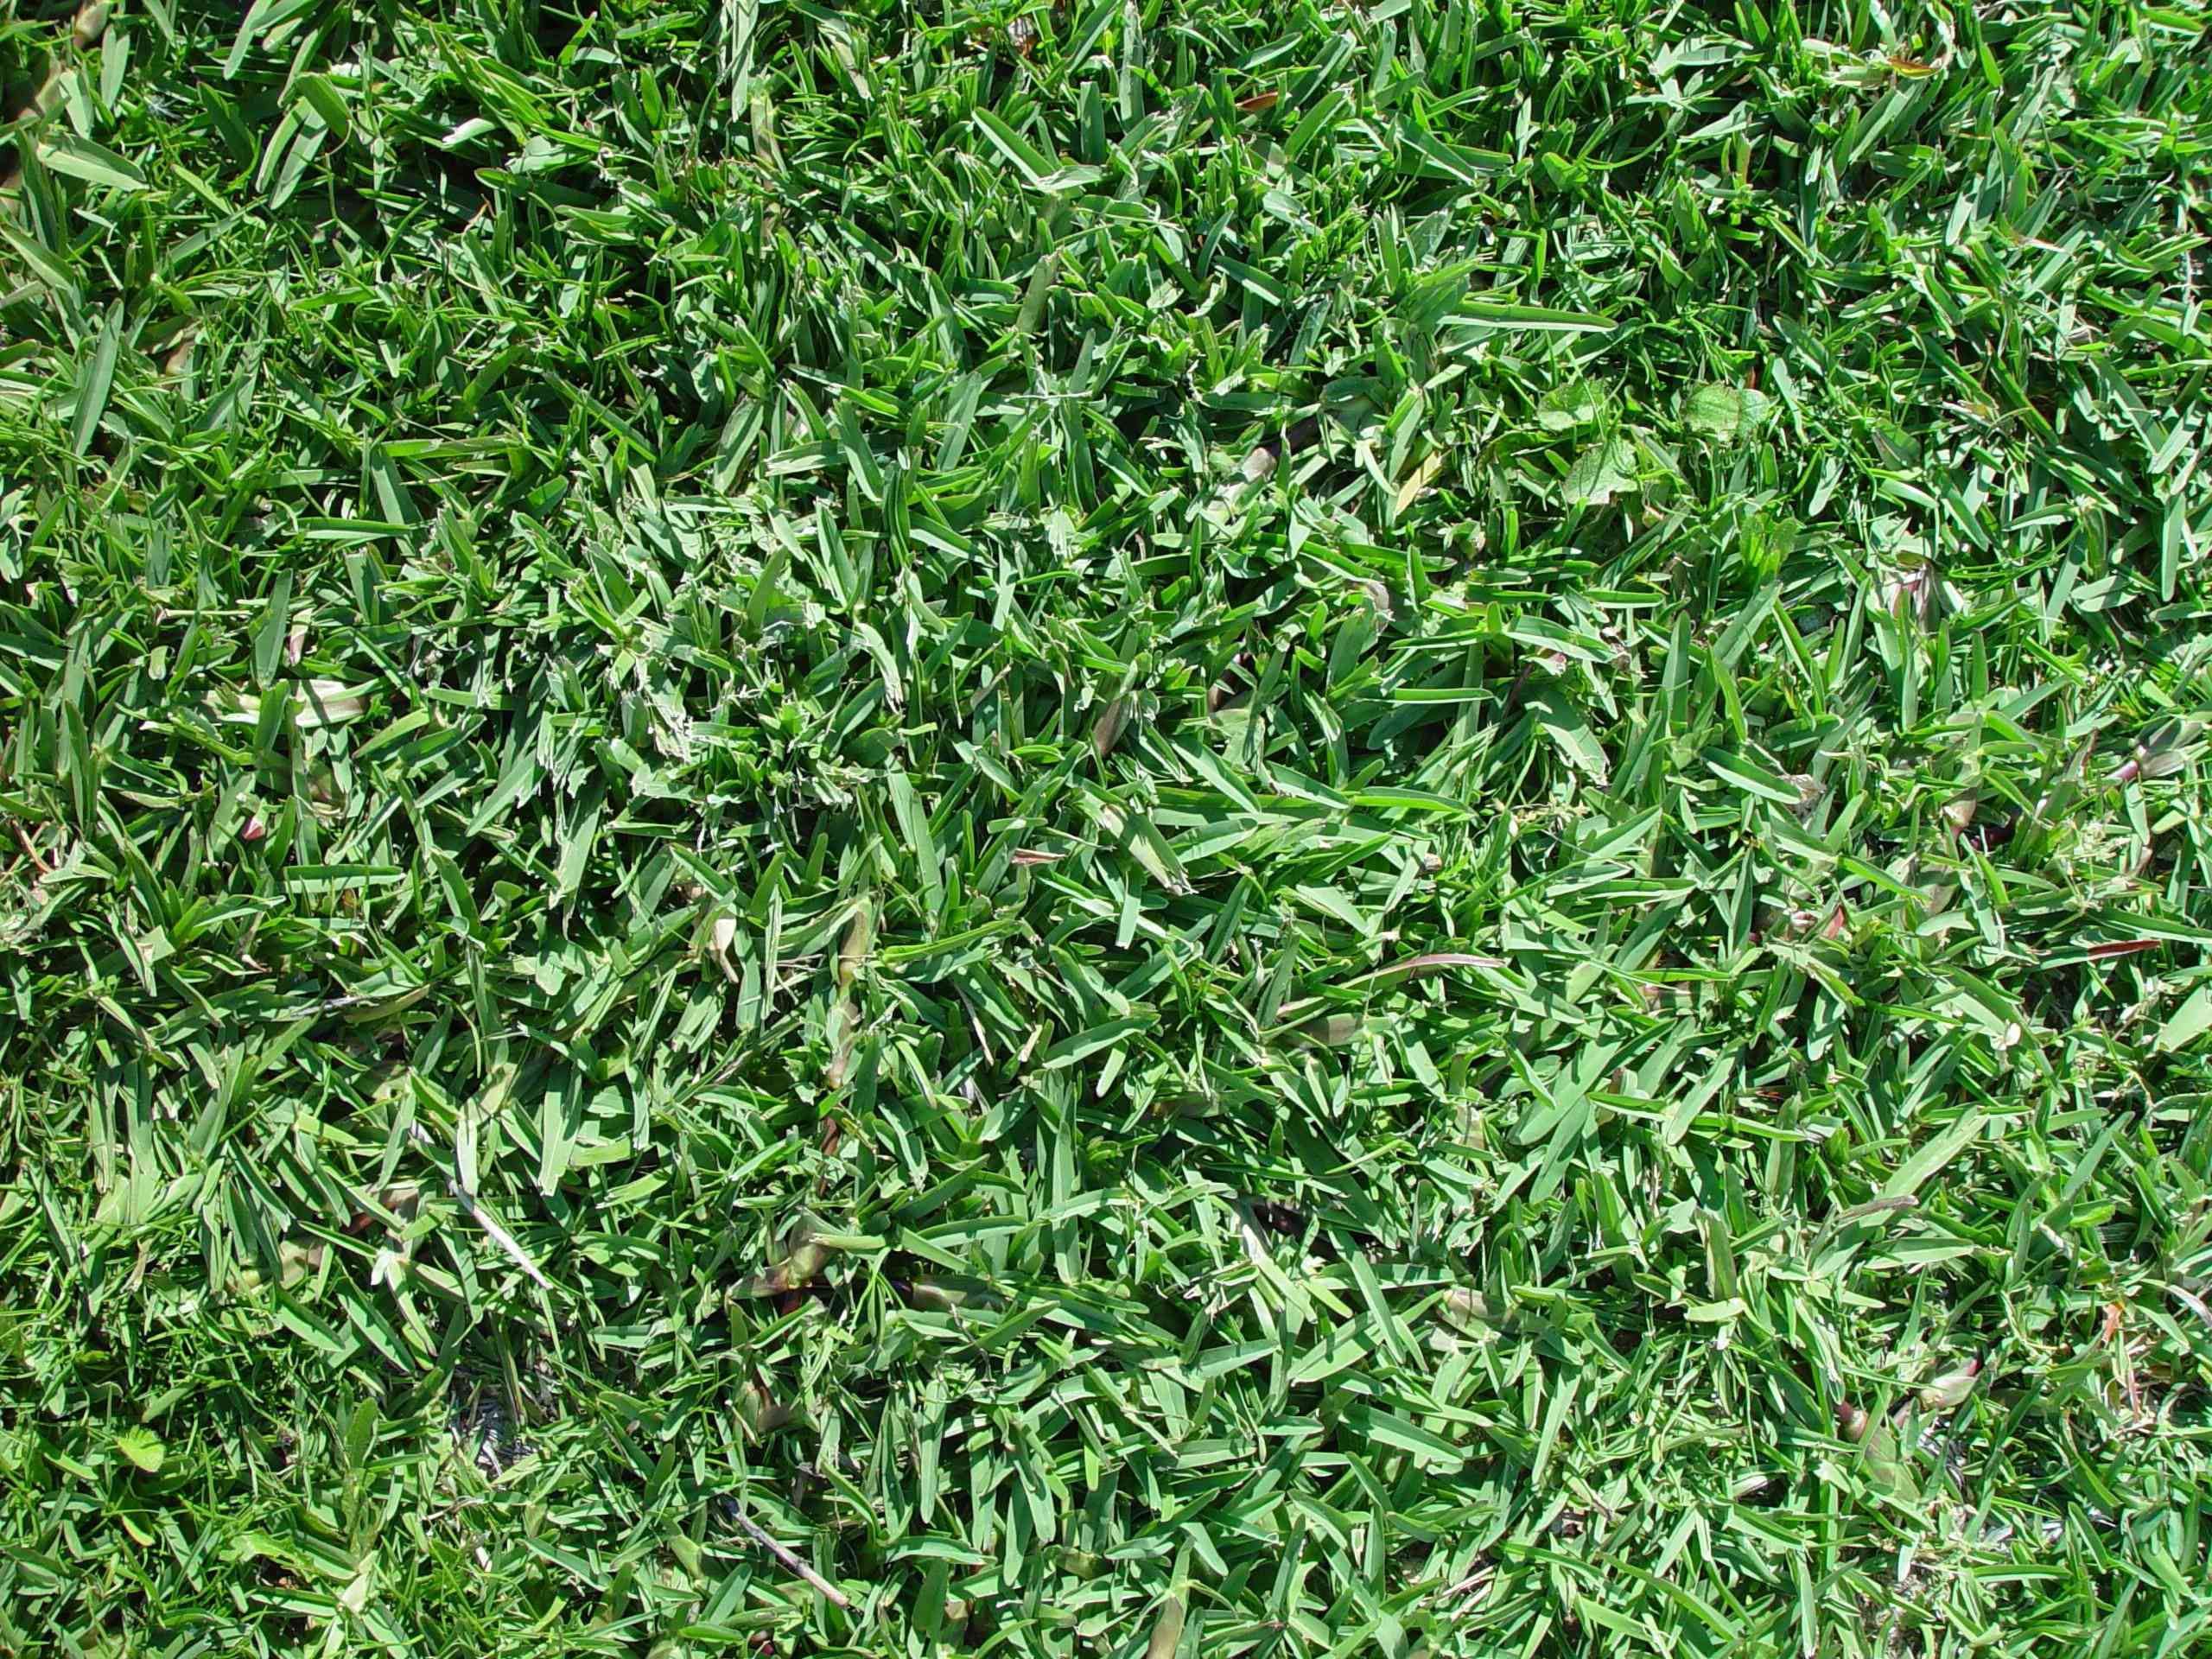 A patch of wide-bladed green grass that has been mowed short